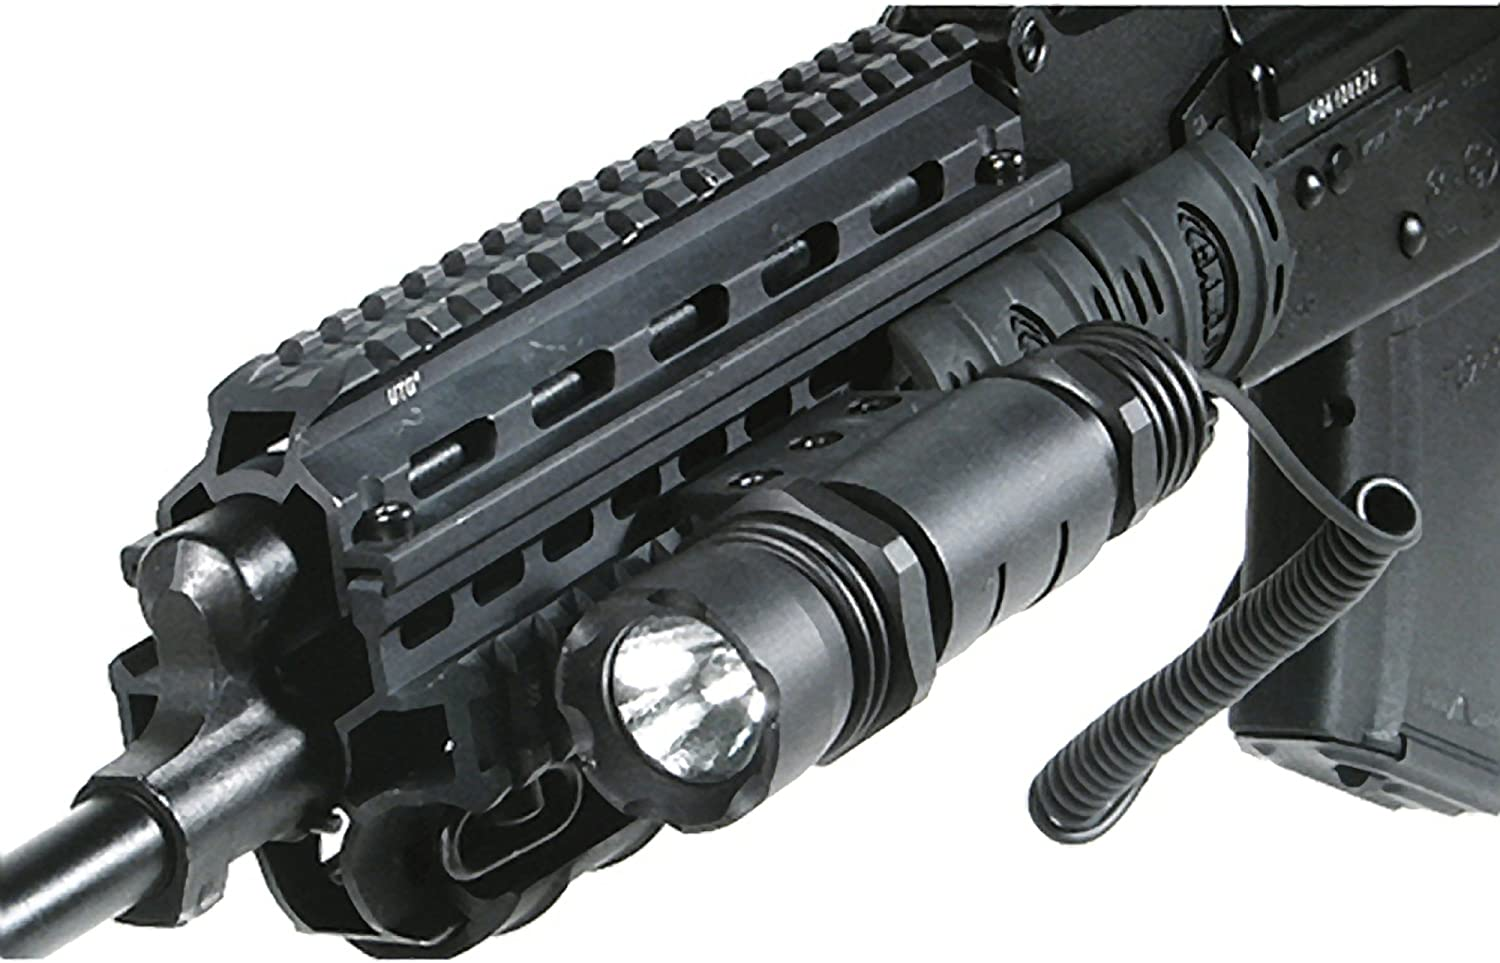 An image of a pistol light in black color attached on the left side of a black rifle.